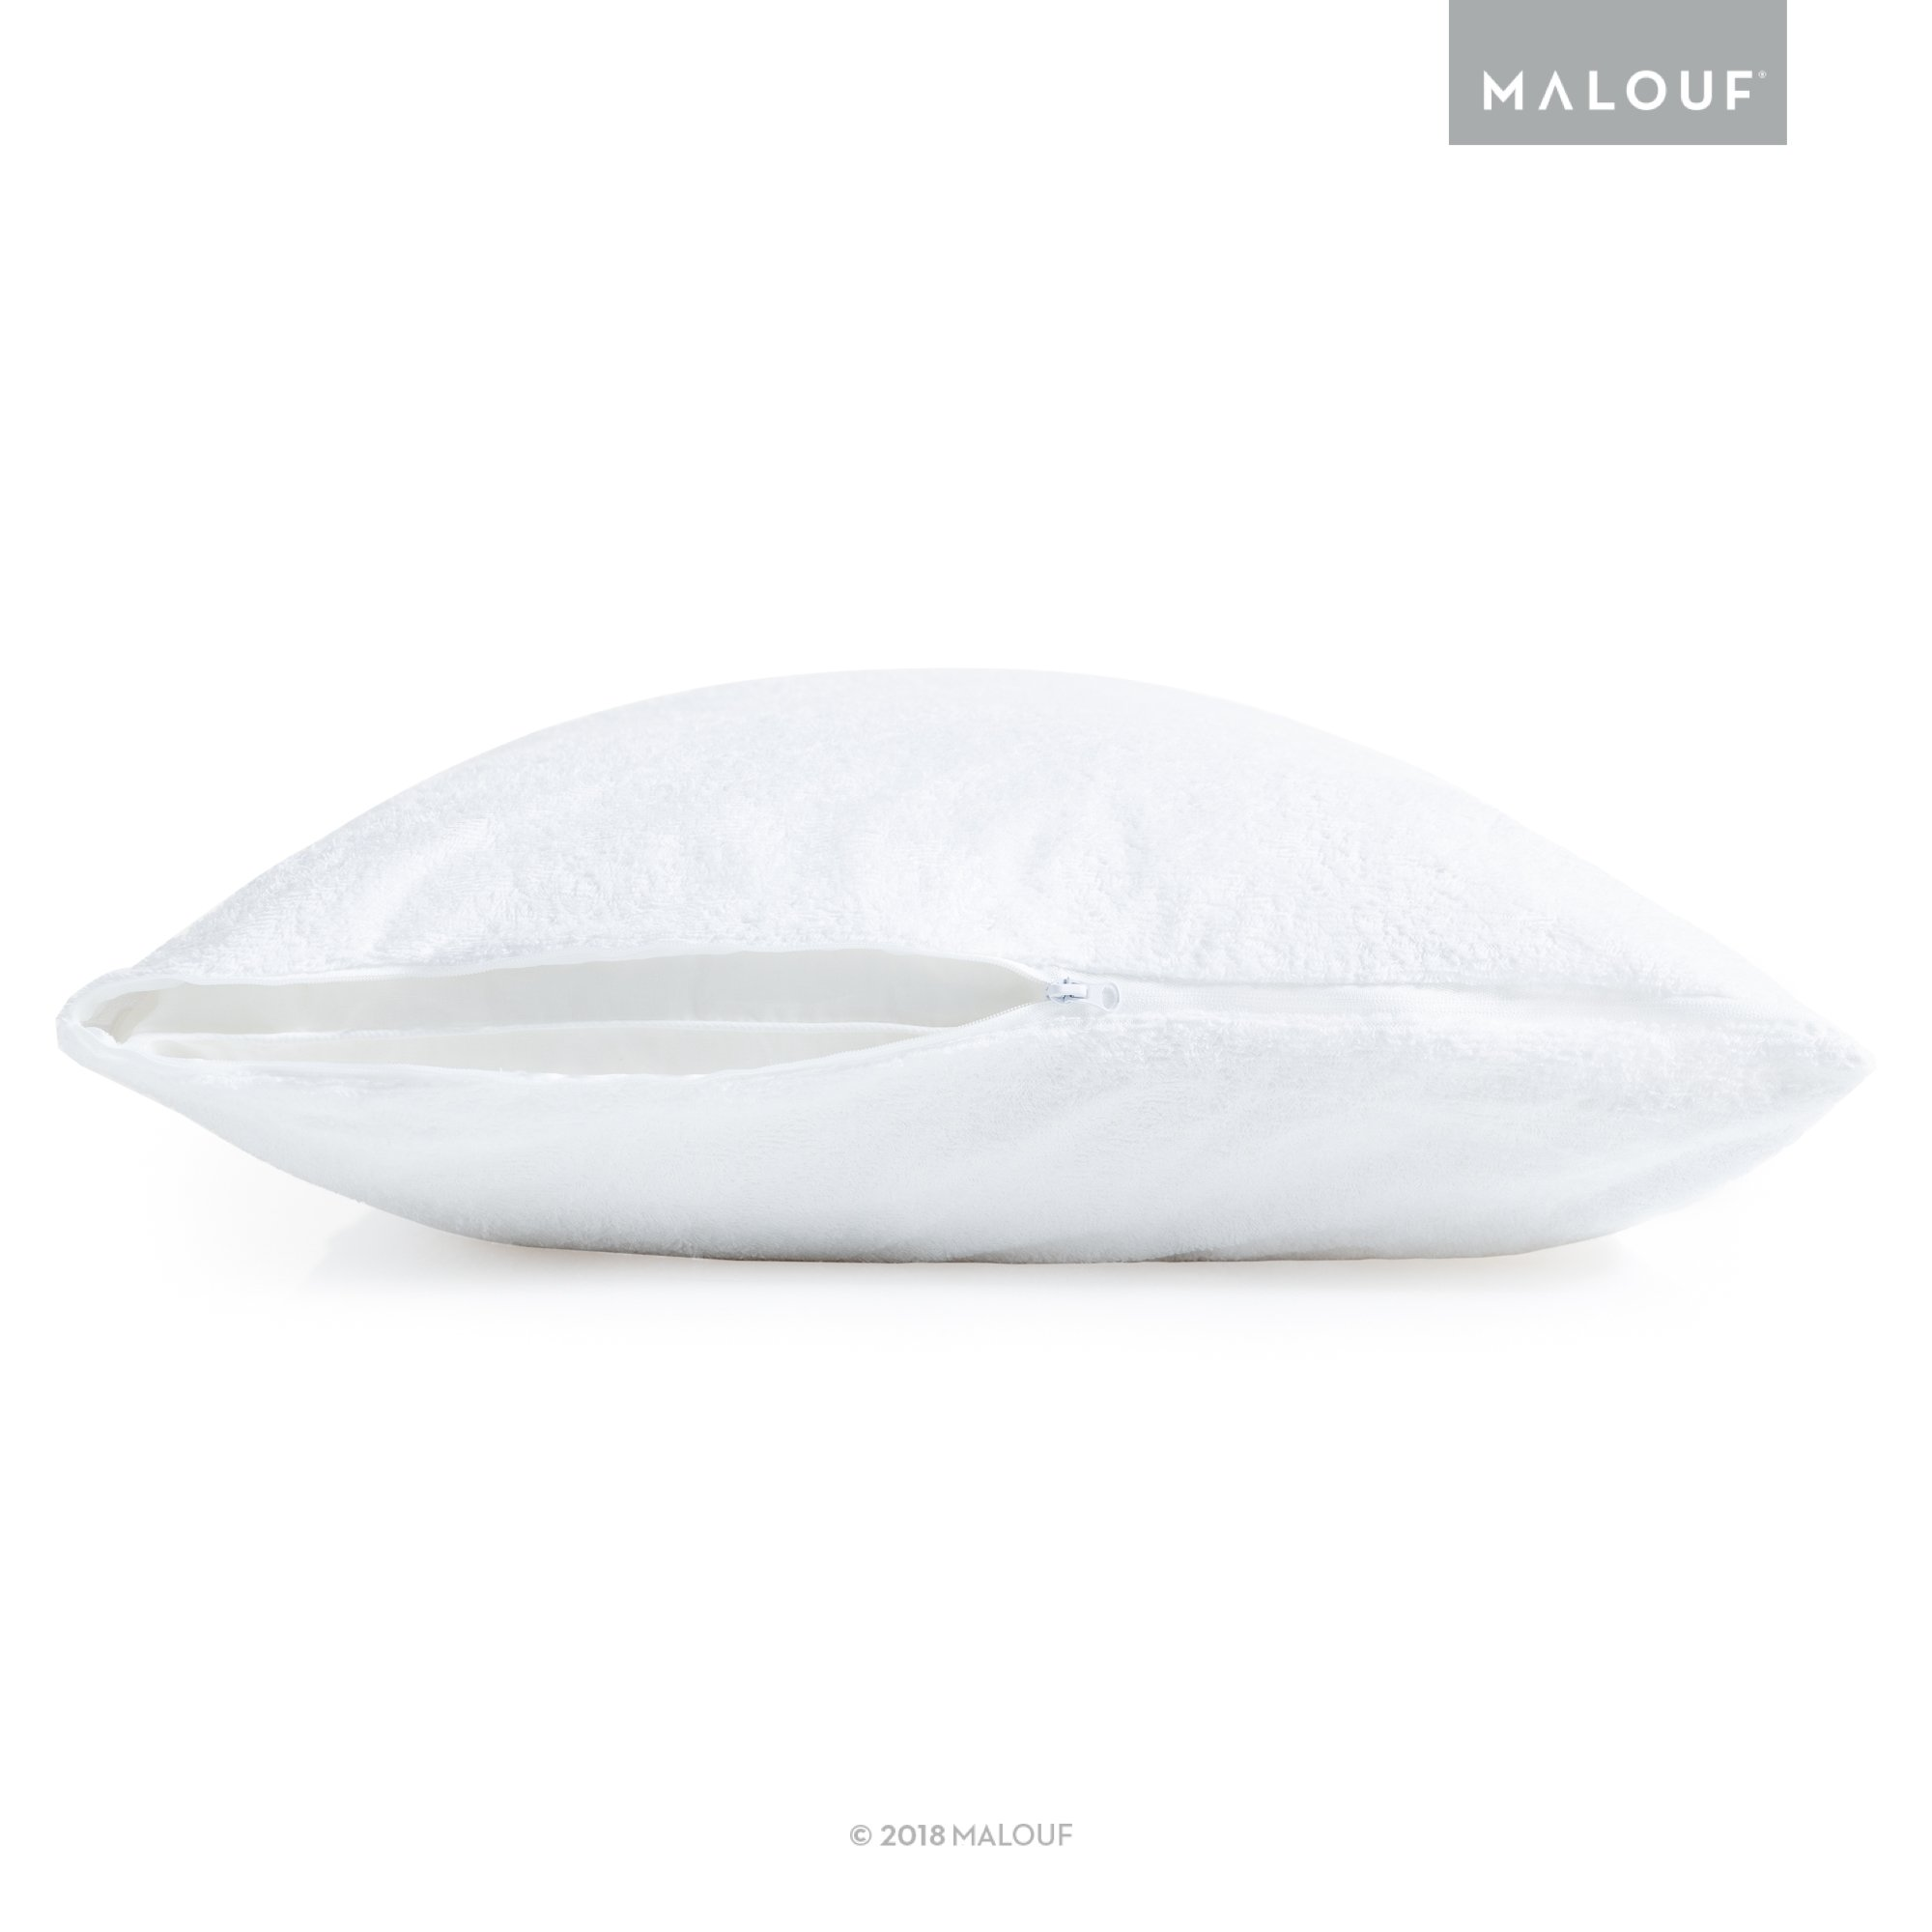 Sleep Tite Hypoallergenic 100% Waterproof Pillow Protector- 15-Year Warranty - Set of 2 - Standard by MALOUF (Image #5)